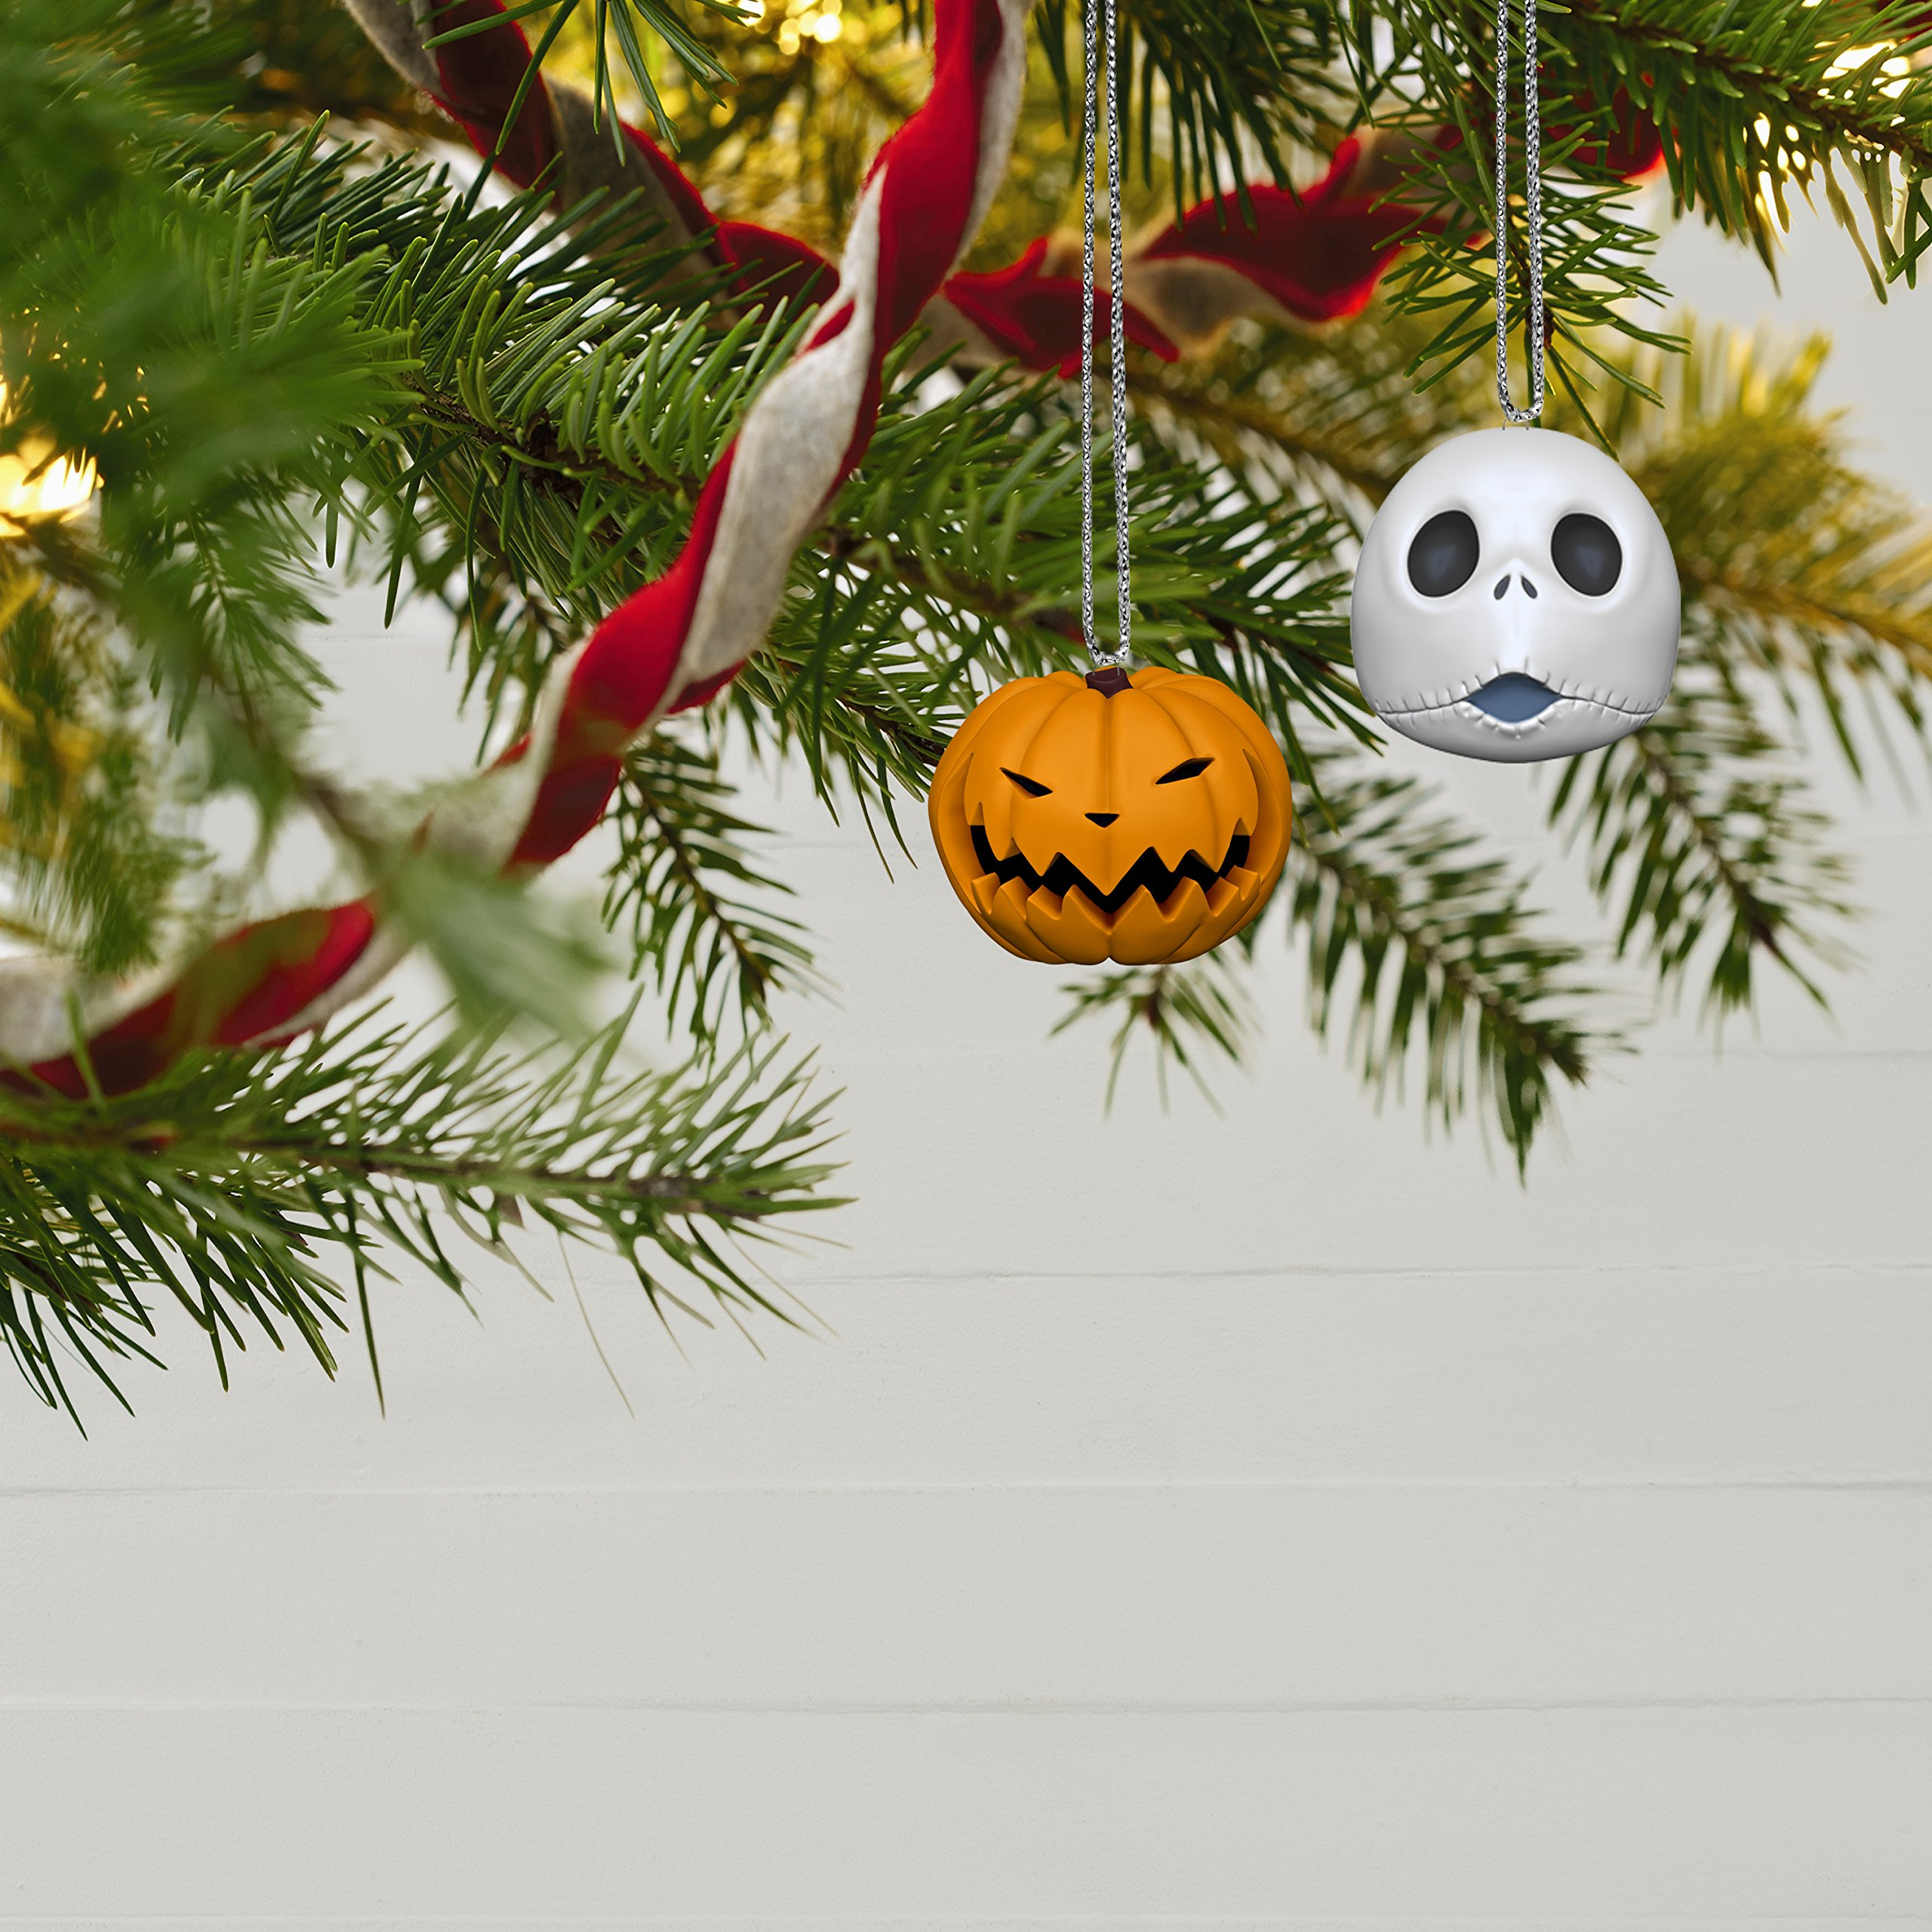 nightmare before christmas hallmark ornaments - The Nightmare Before Christmas Decorations